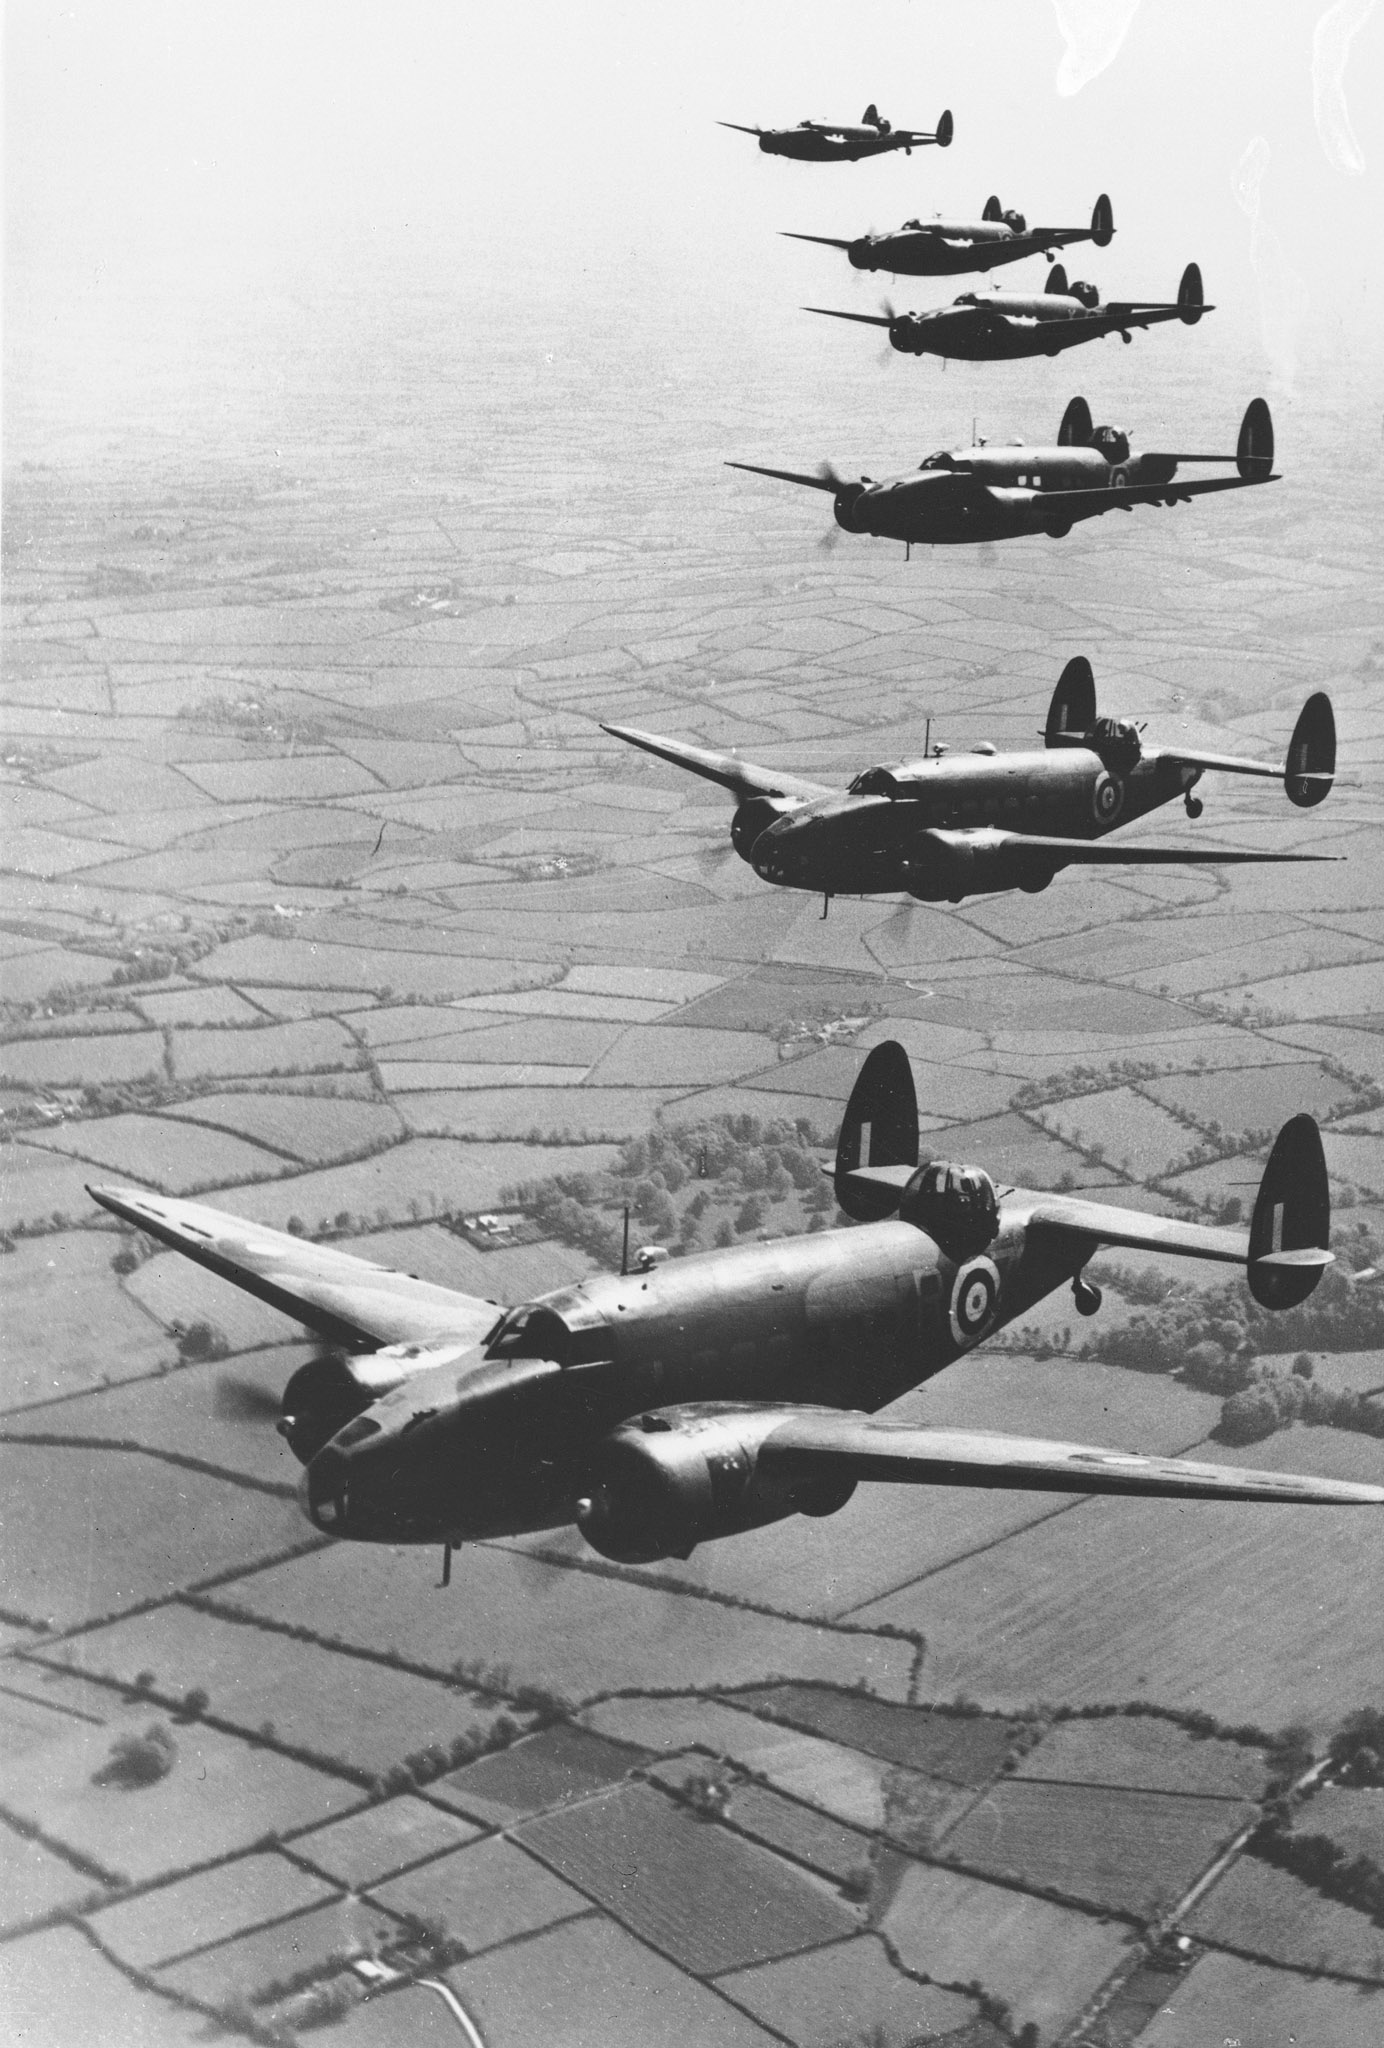 Hudson bombers fly over the English countryside on October 19, 1941. PHOTO: DND Archives PL-5385